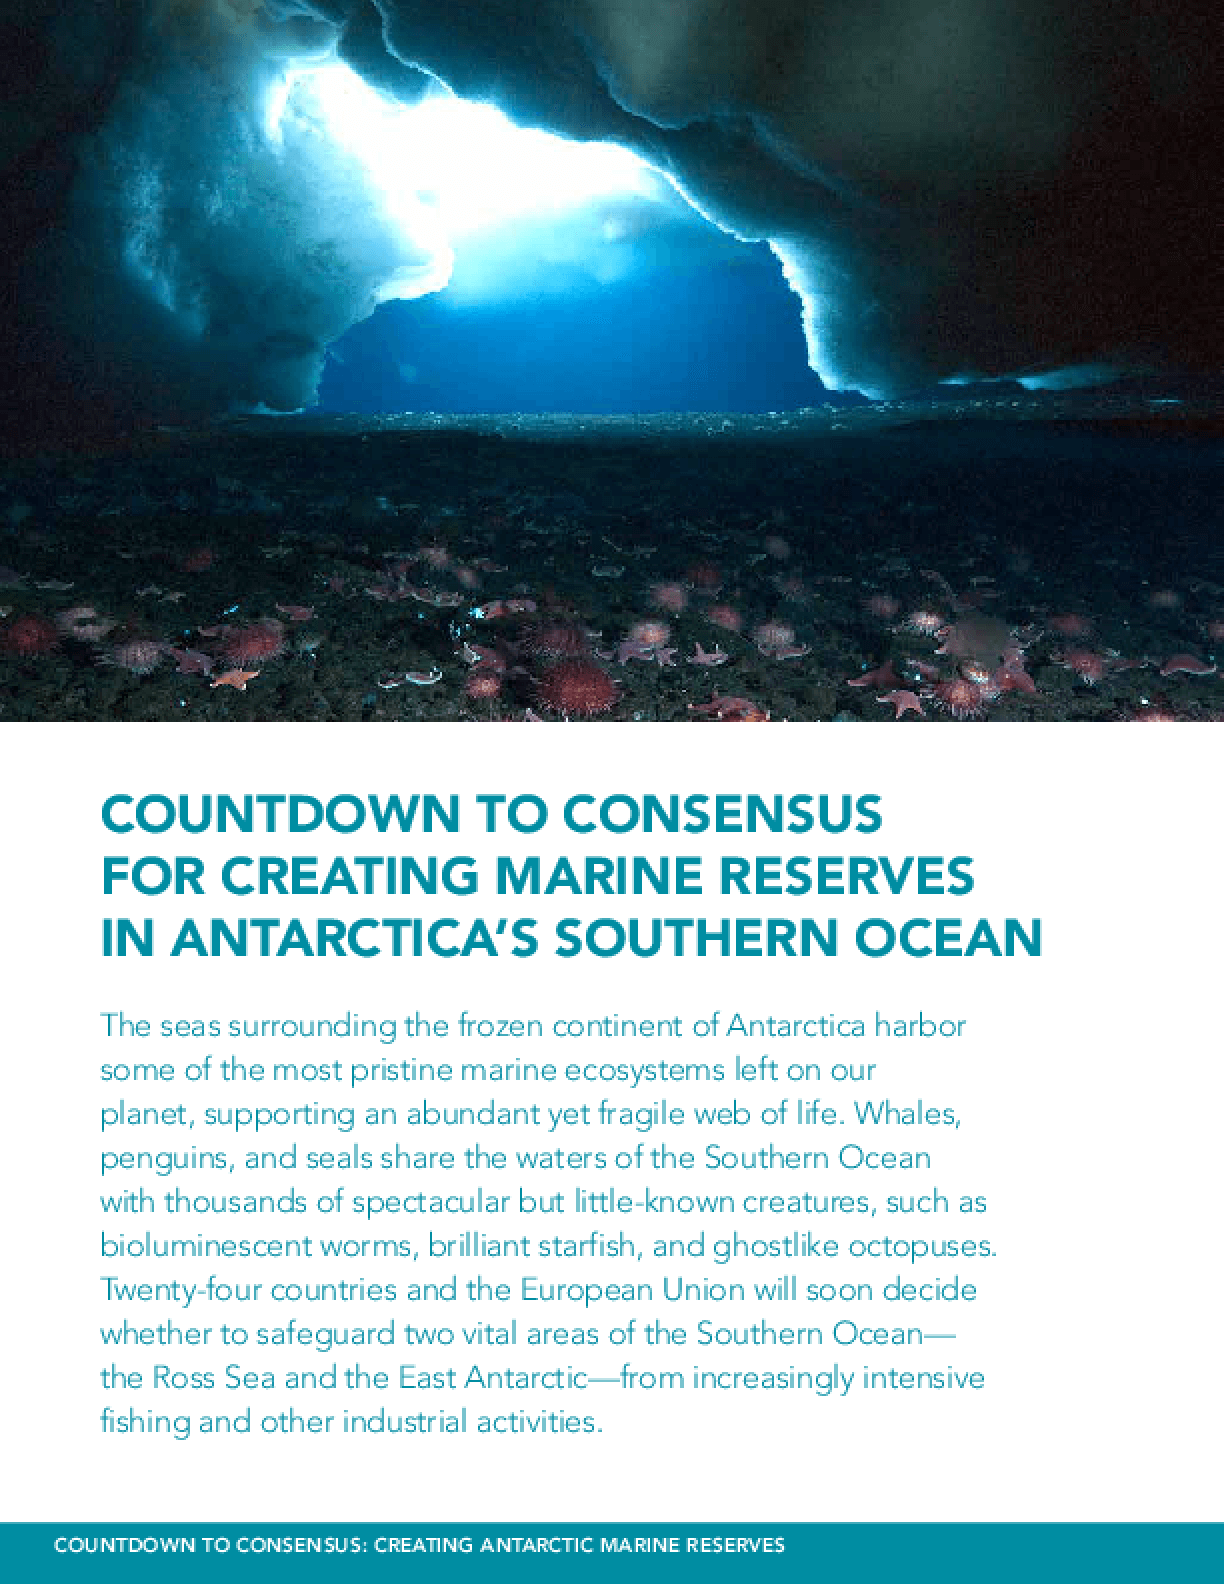 Countdown to Consensus for Creating Marine Reserves in Antarctica's Southern Ocean